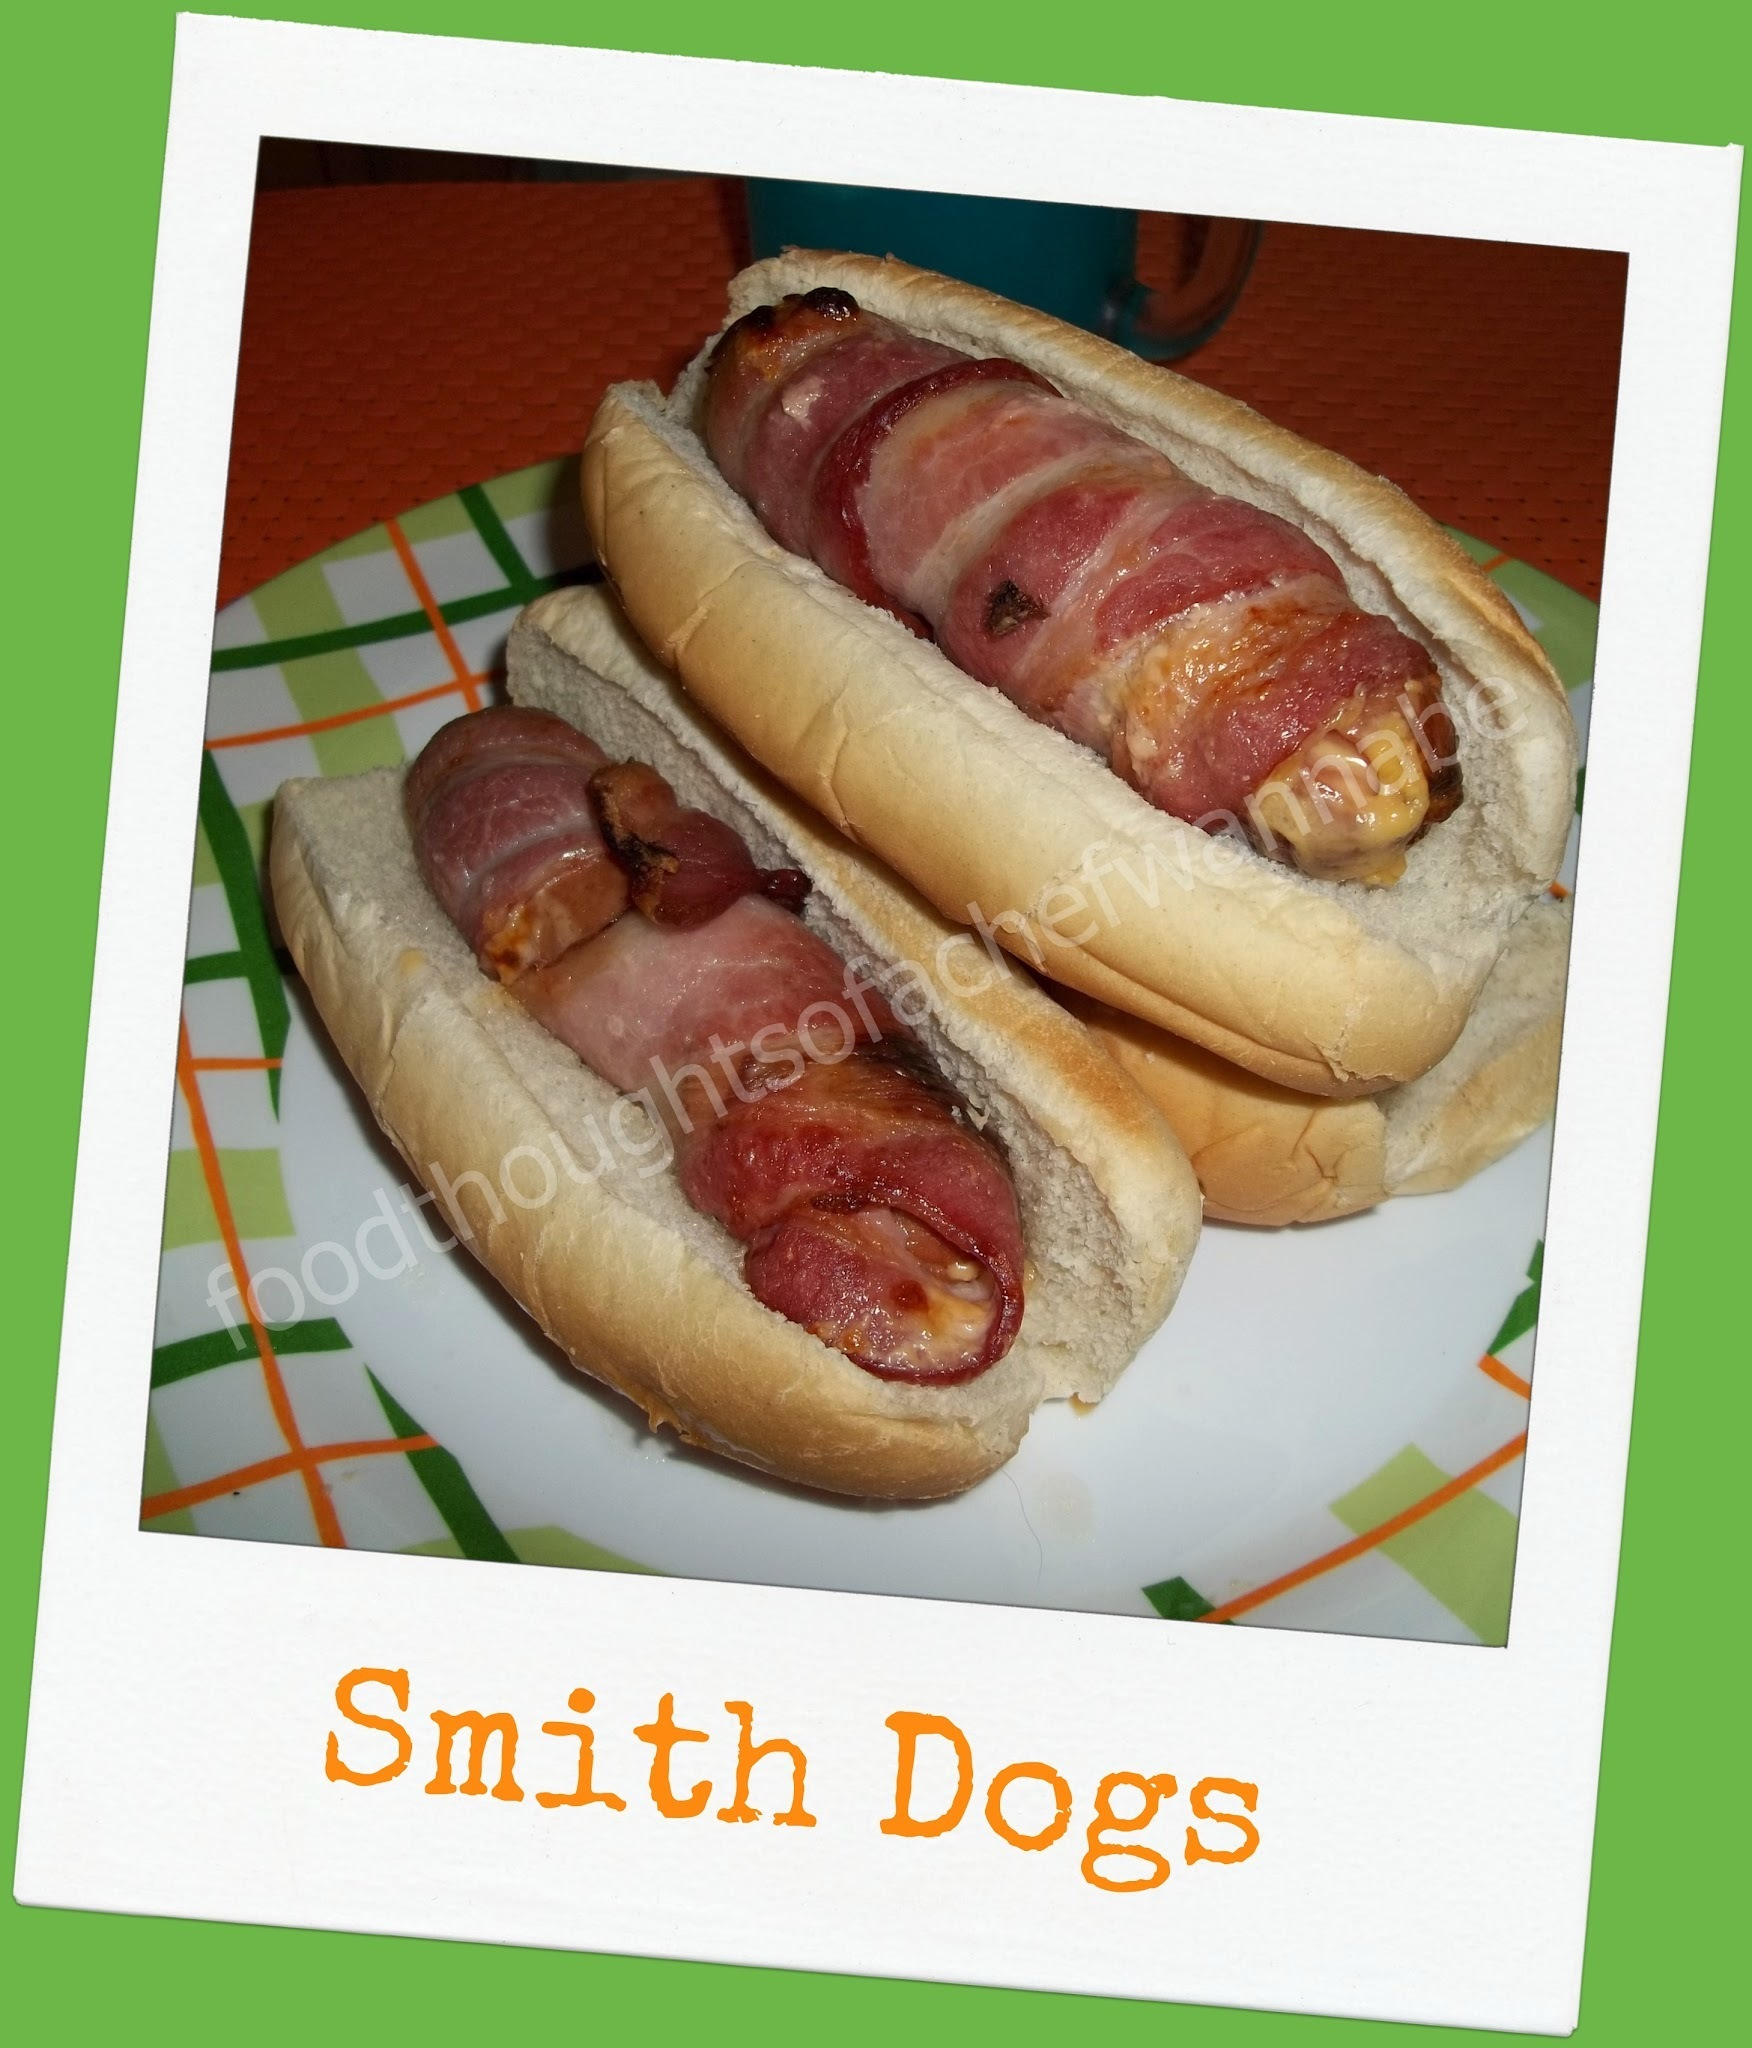 Hot Dogs...Smith style.  SMITH DOGS!